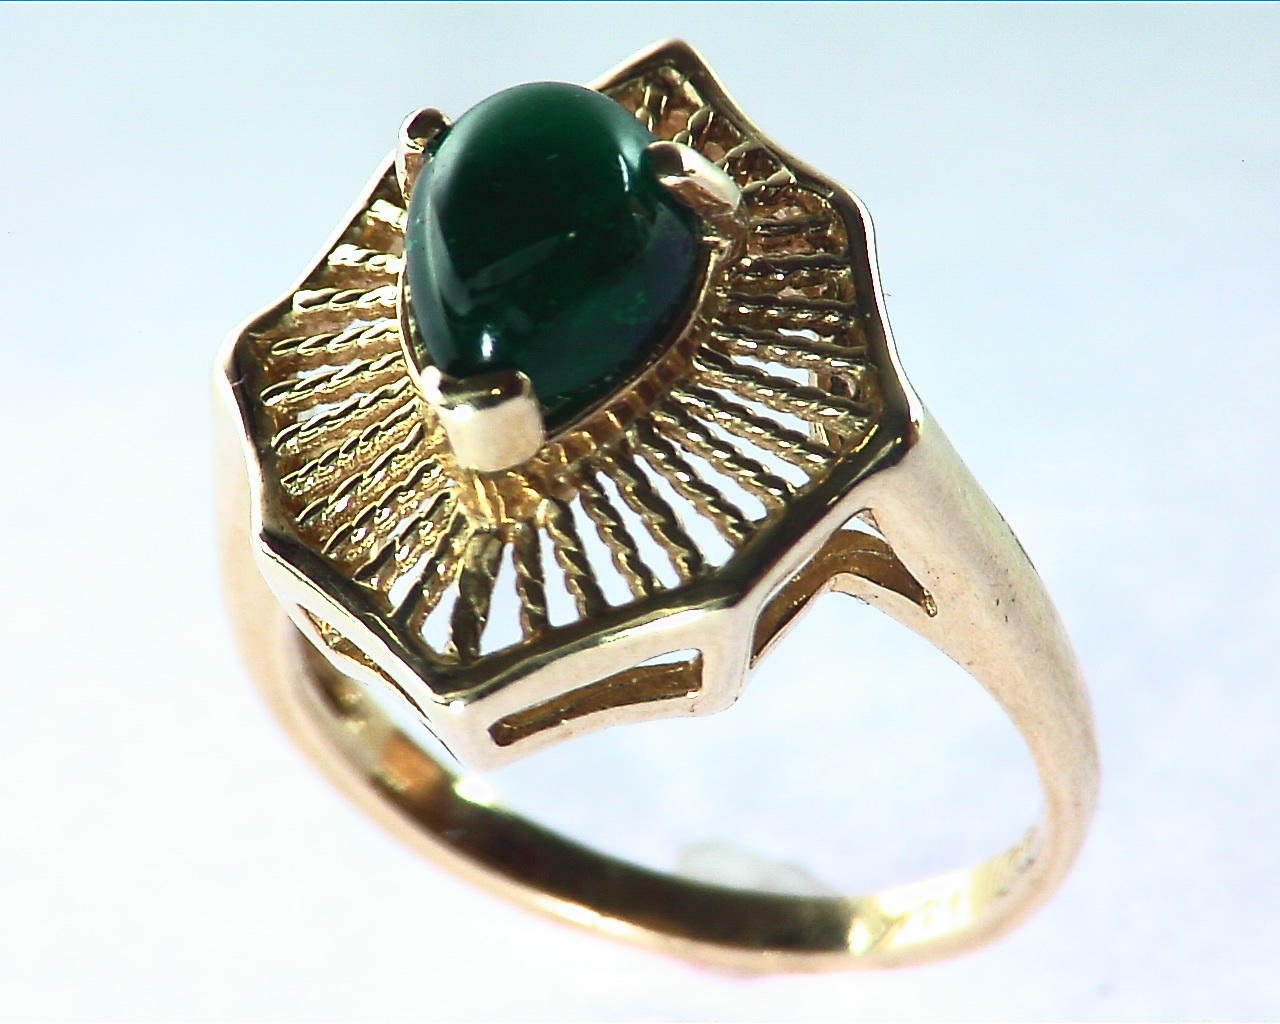 Emerald Engagement Ring in 14 kt Yellow Gold in a Beautiful Design RFK126 2